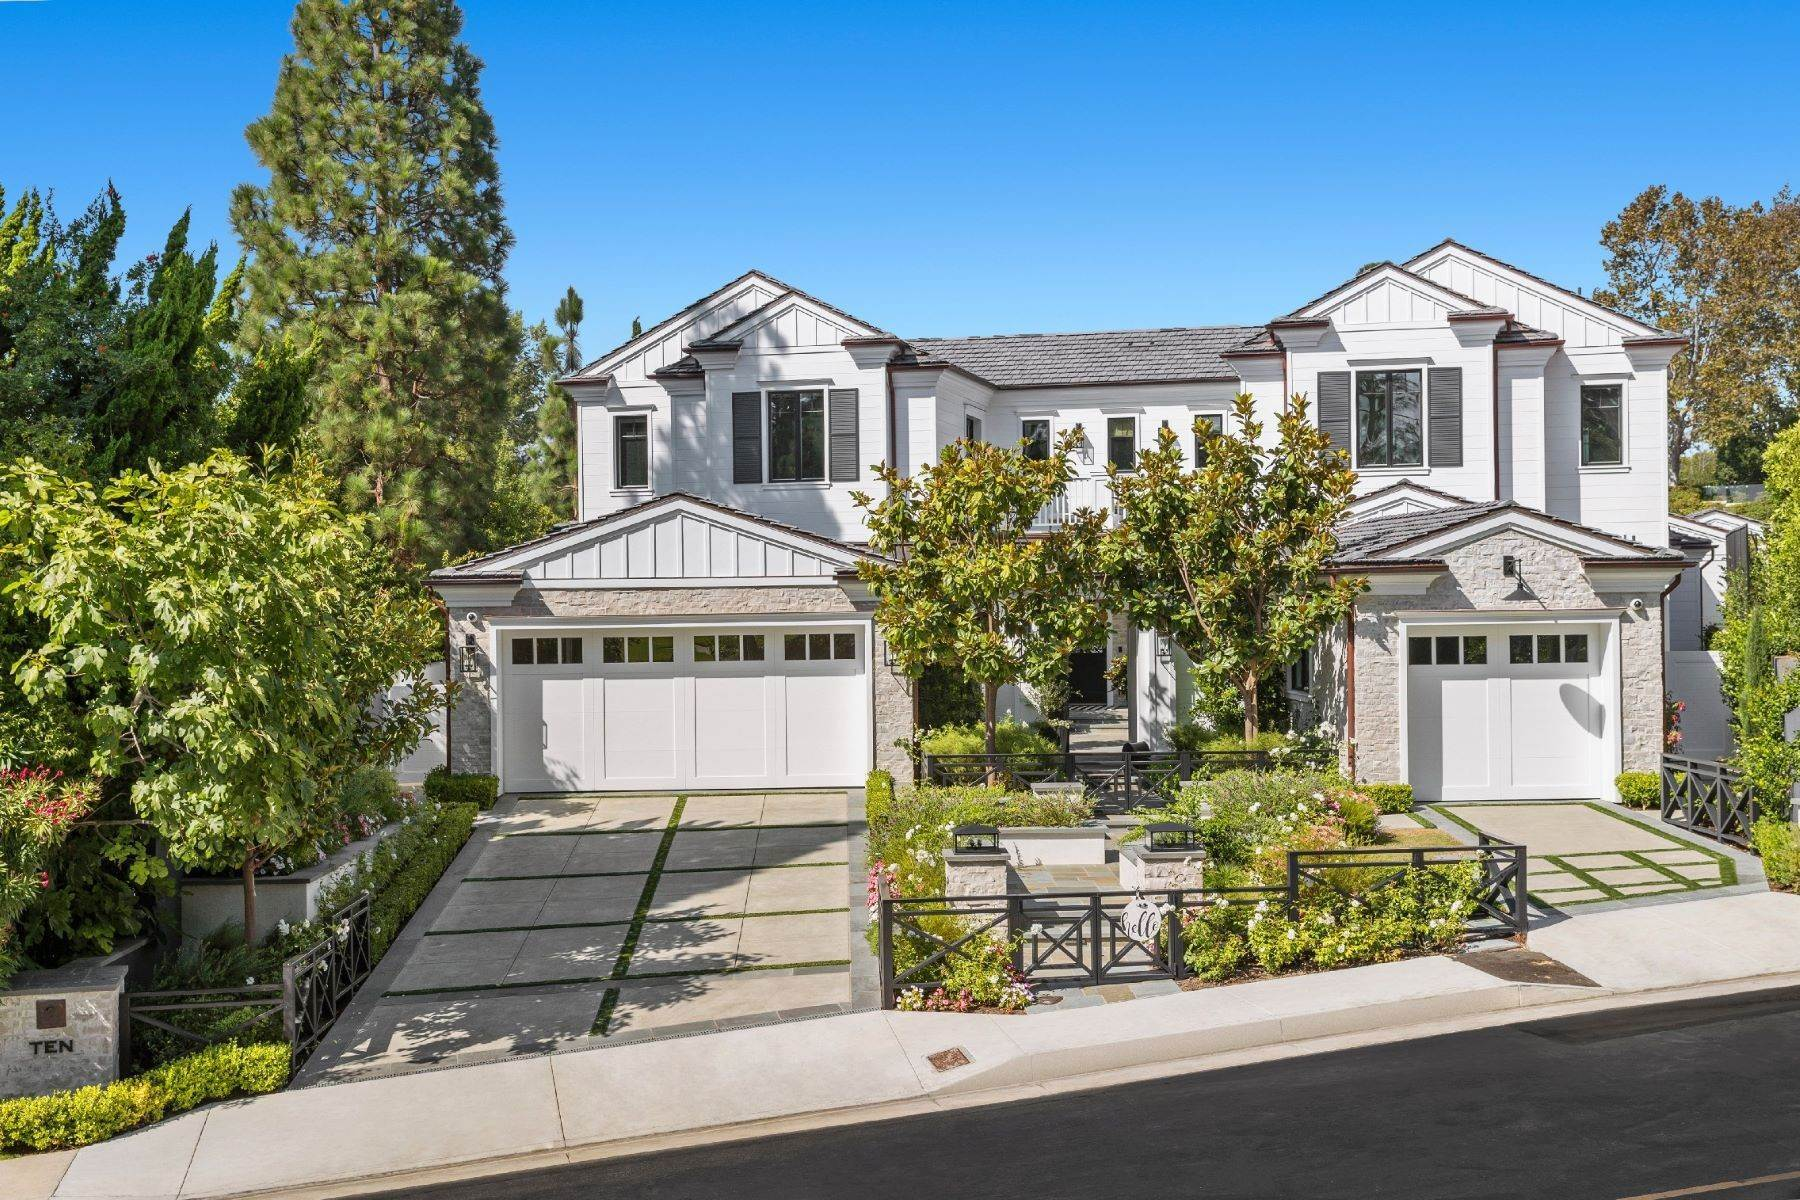 Single Family Homes for Sale at 10 Burning Tree Newport Beach, California 92660 United States